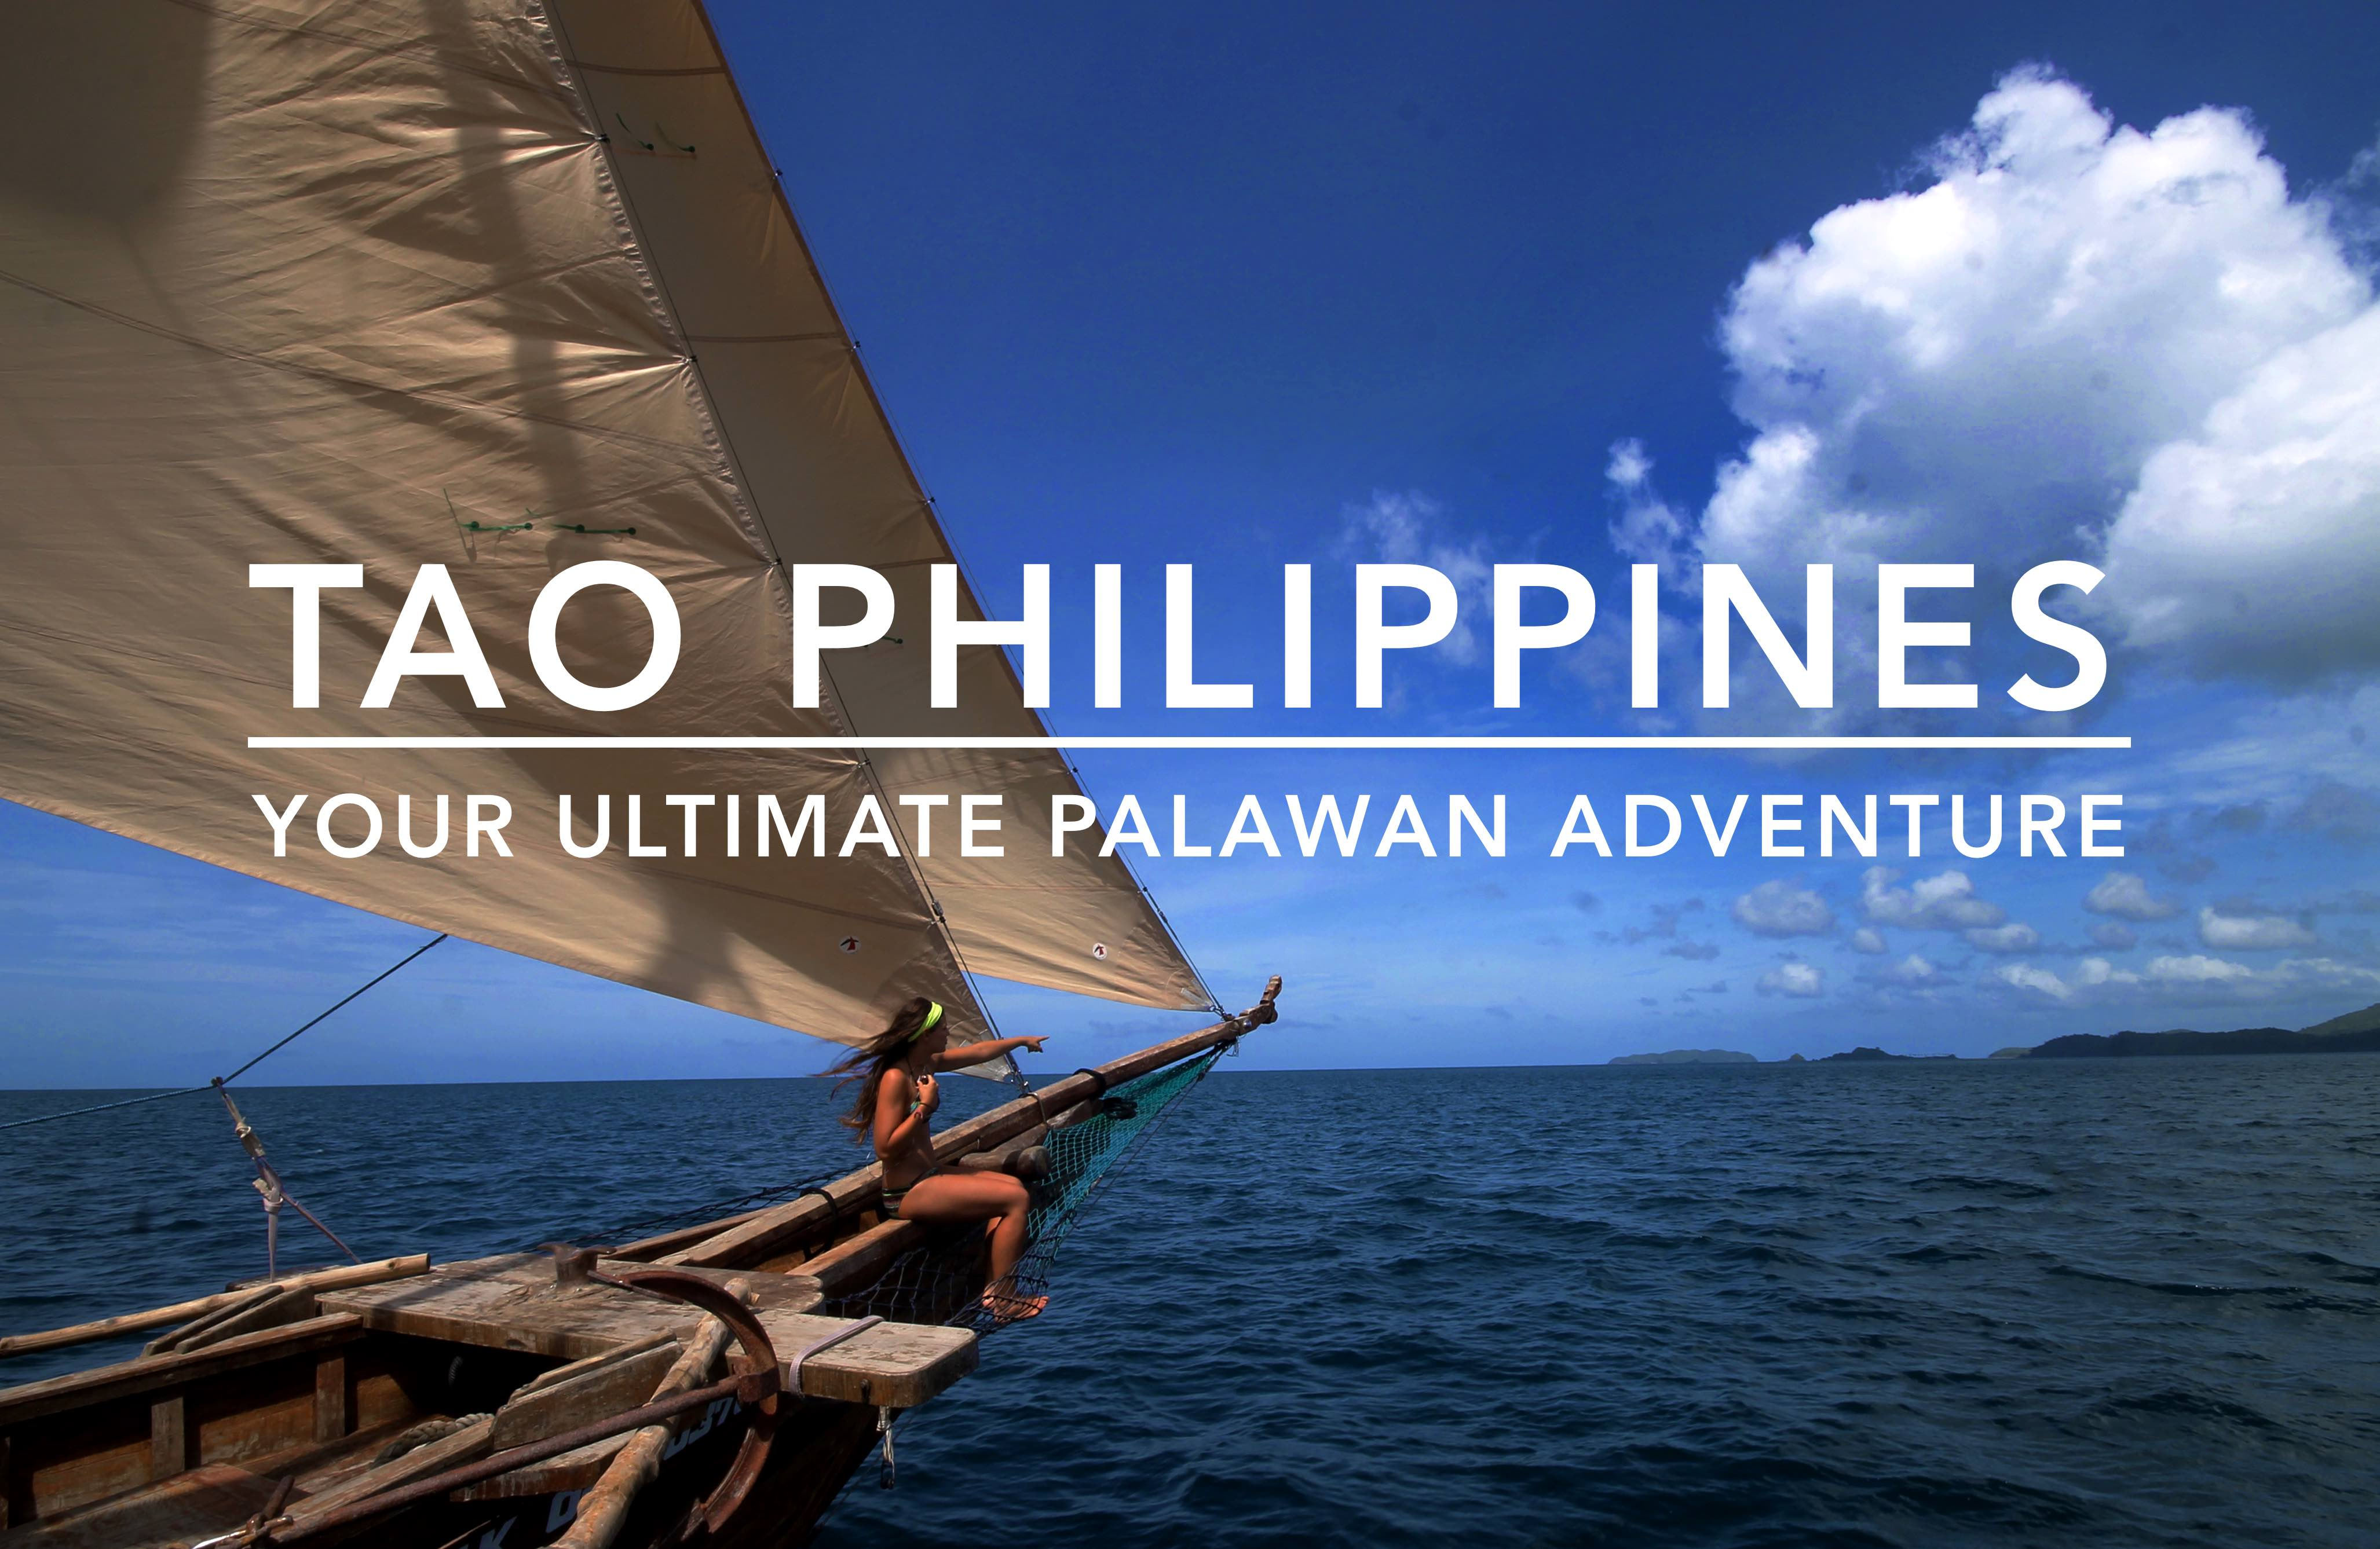 Tao Philippines Sailing Expedition The Palawan Adventure